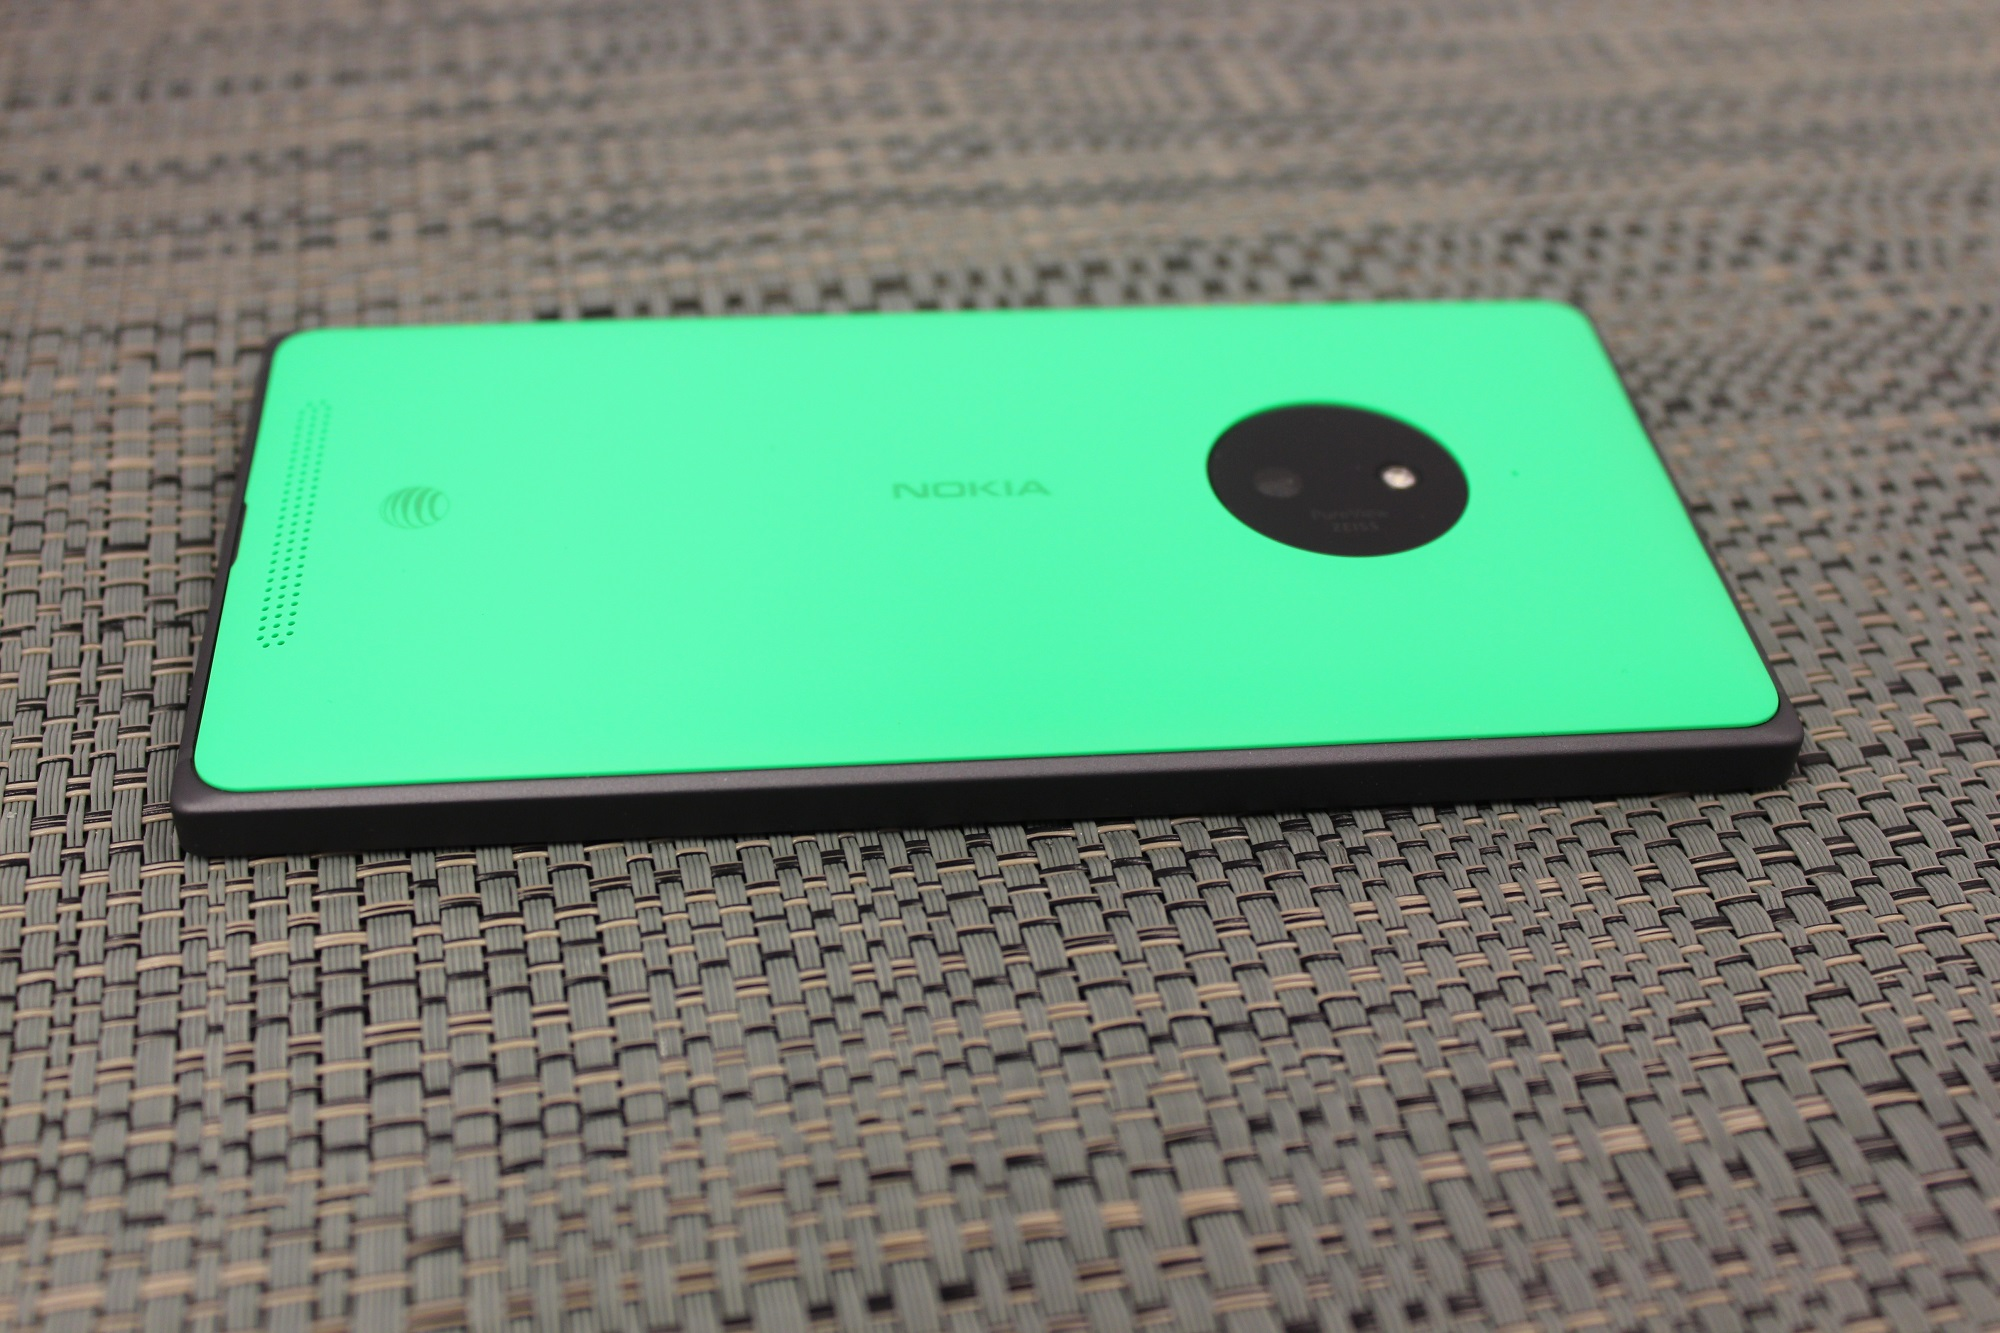 Nokia lumia 830 reviews - Where The Lumia 930 Started To Go Wrong At Least For Me Was That It Was Too Thick And Too Heavy It Could Have Likely Gotten Away With The Thickness If